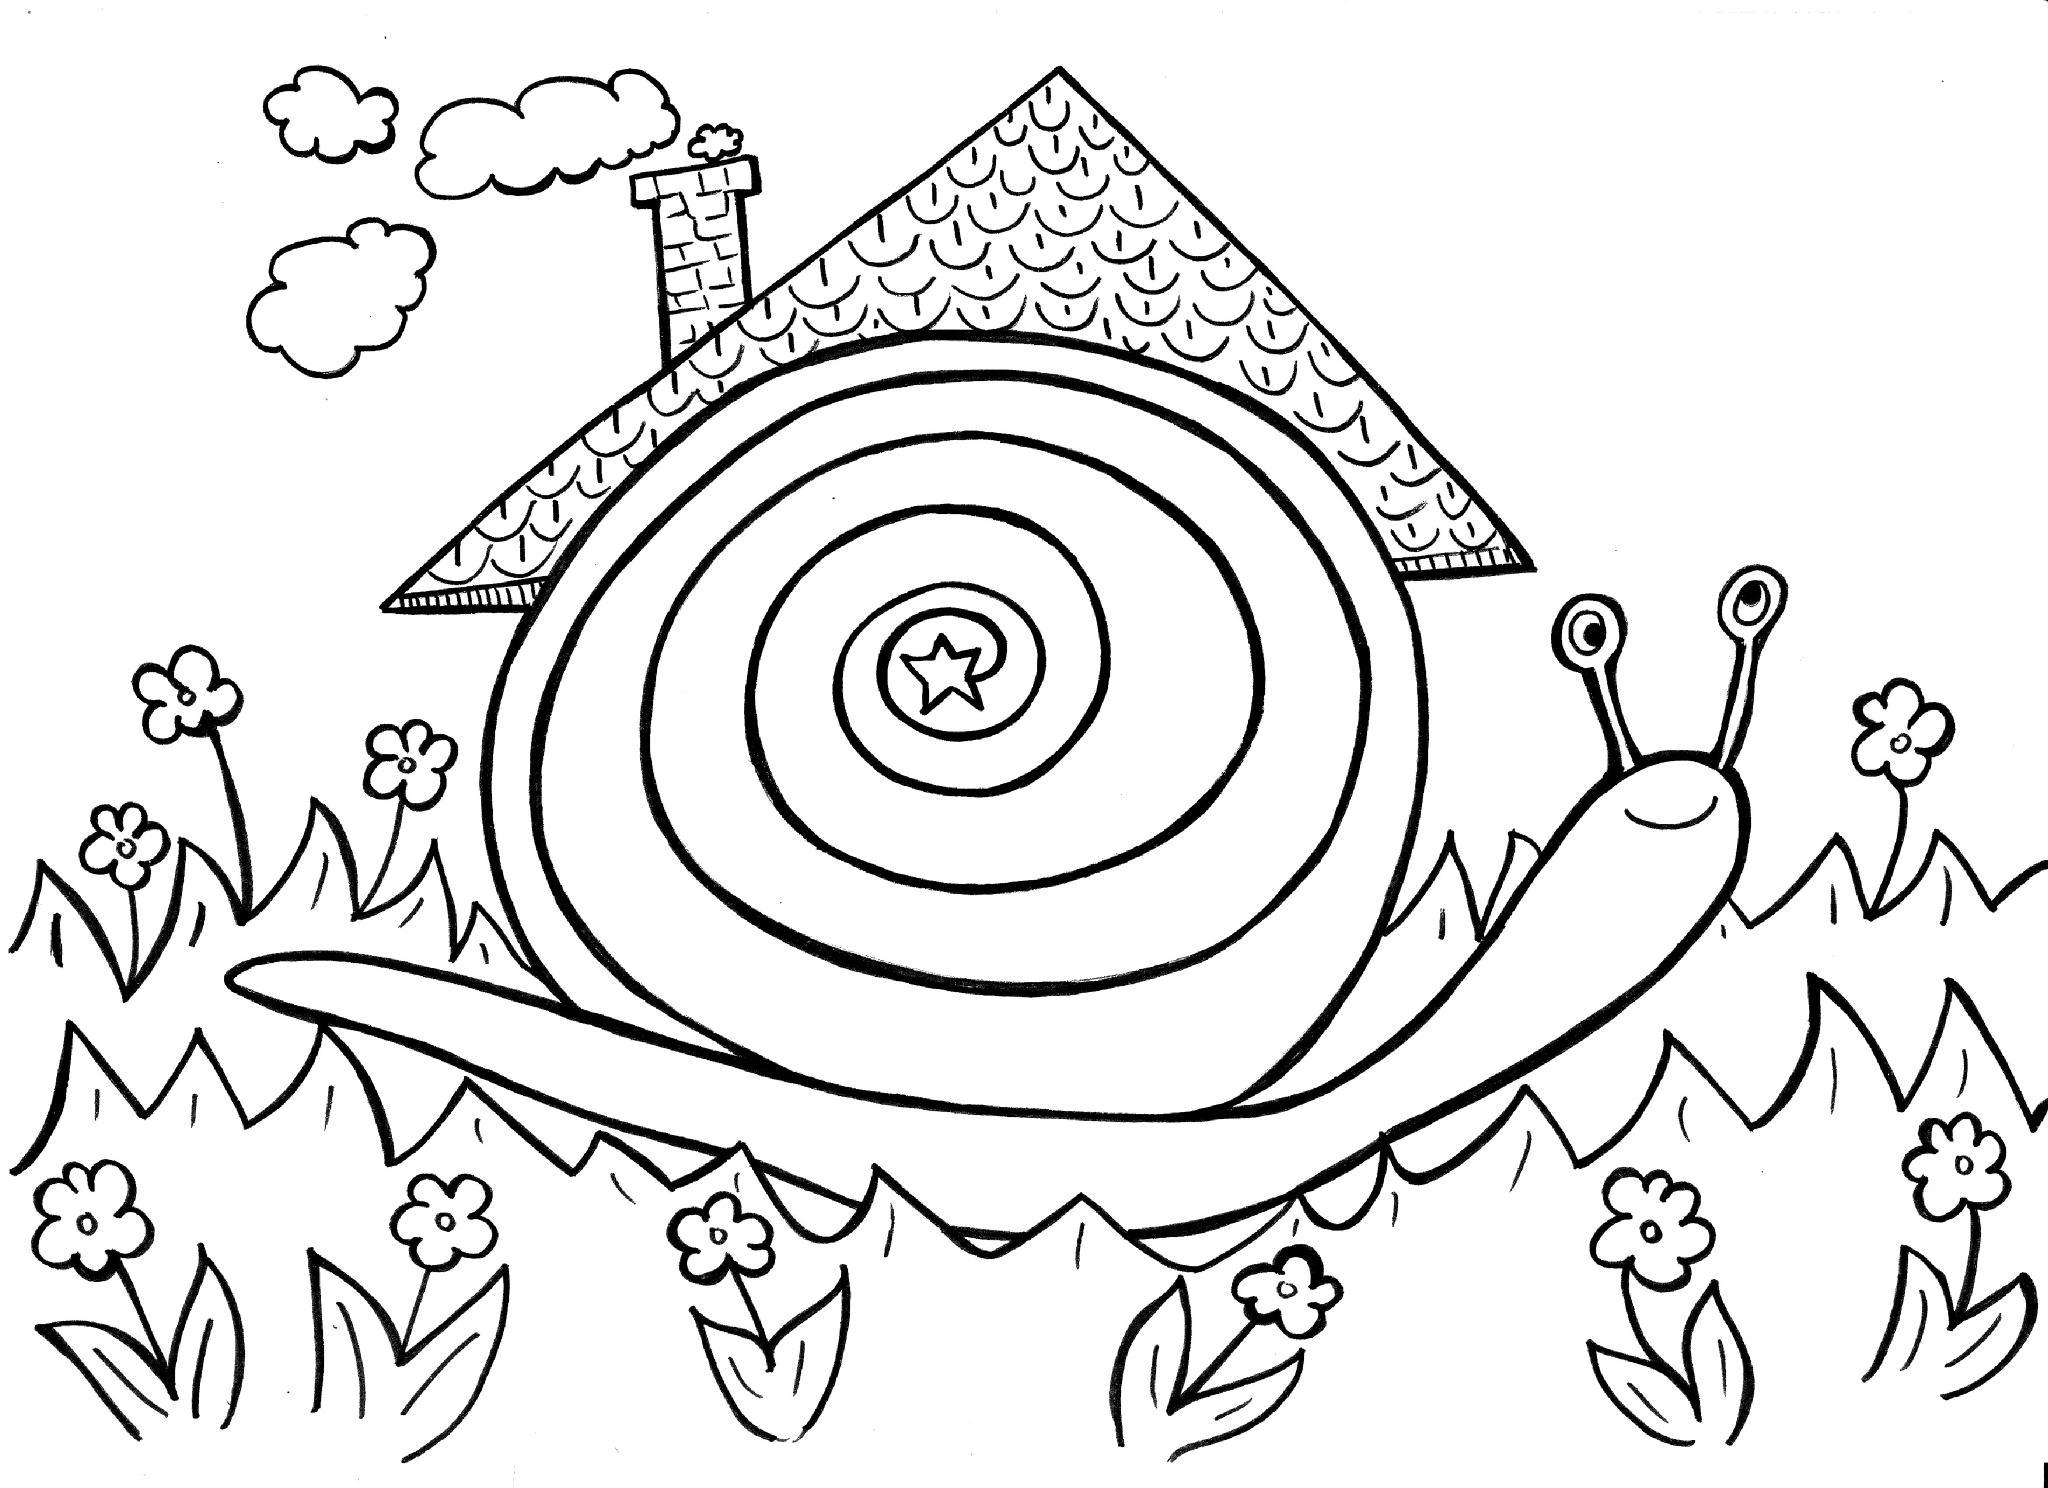 Hugo l 39 escargot dessin chiffres - Coloriage escargot turbo ...